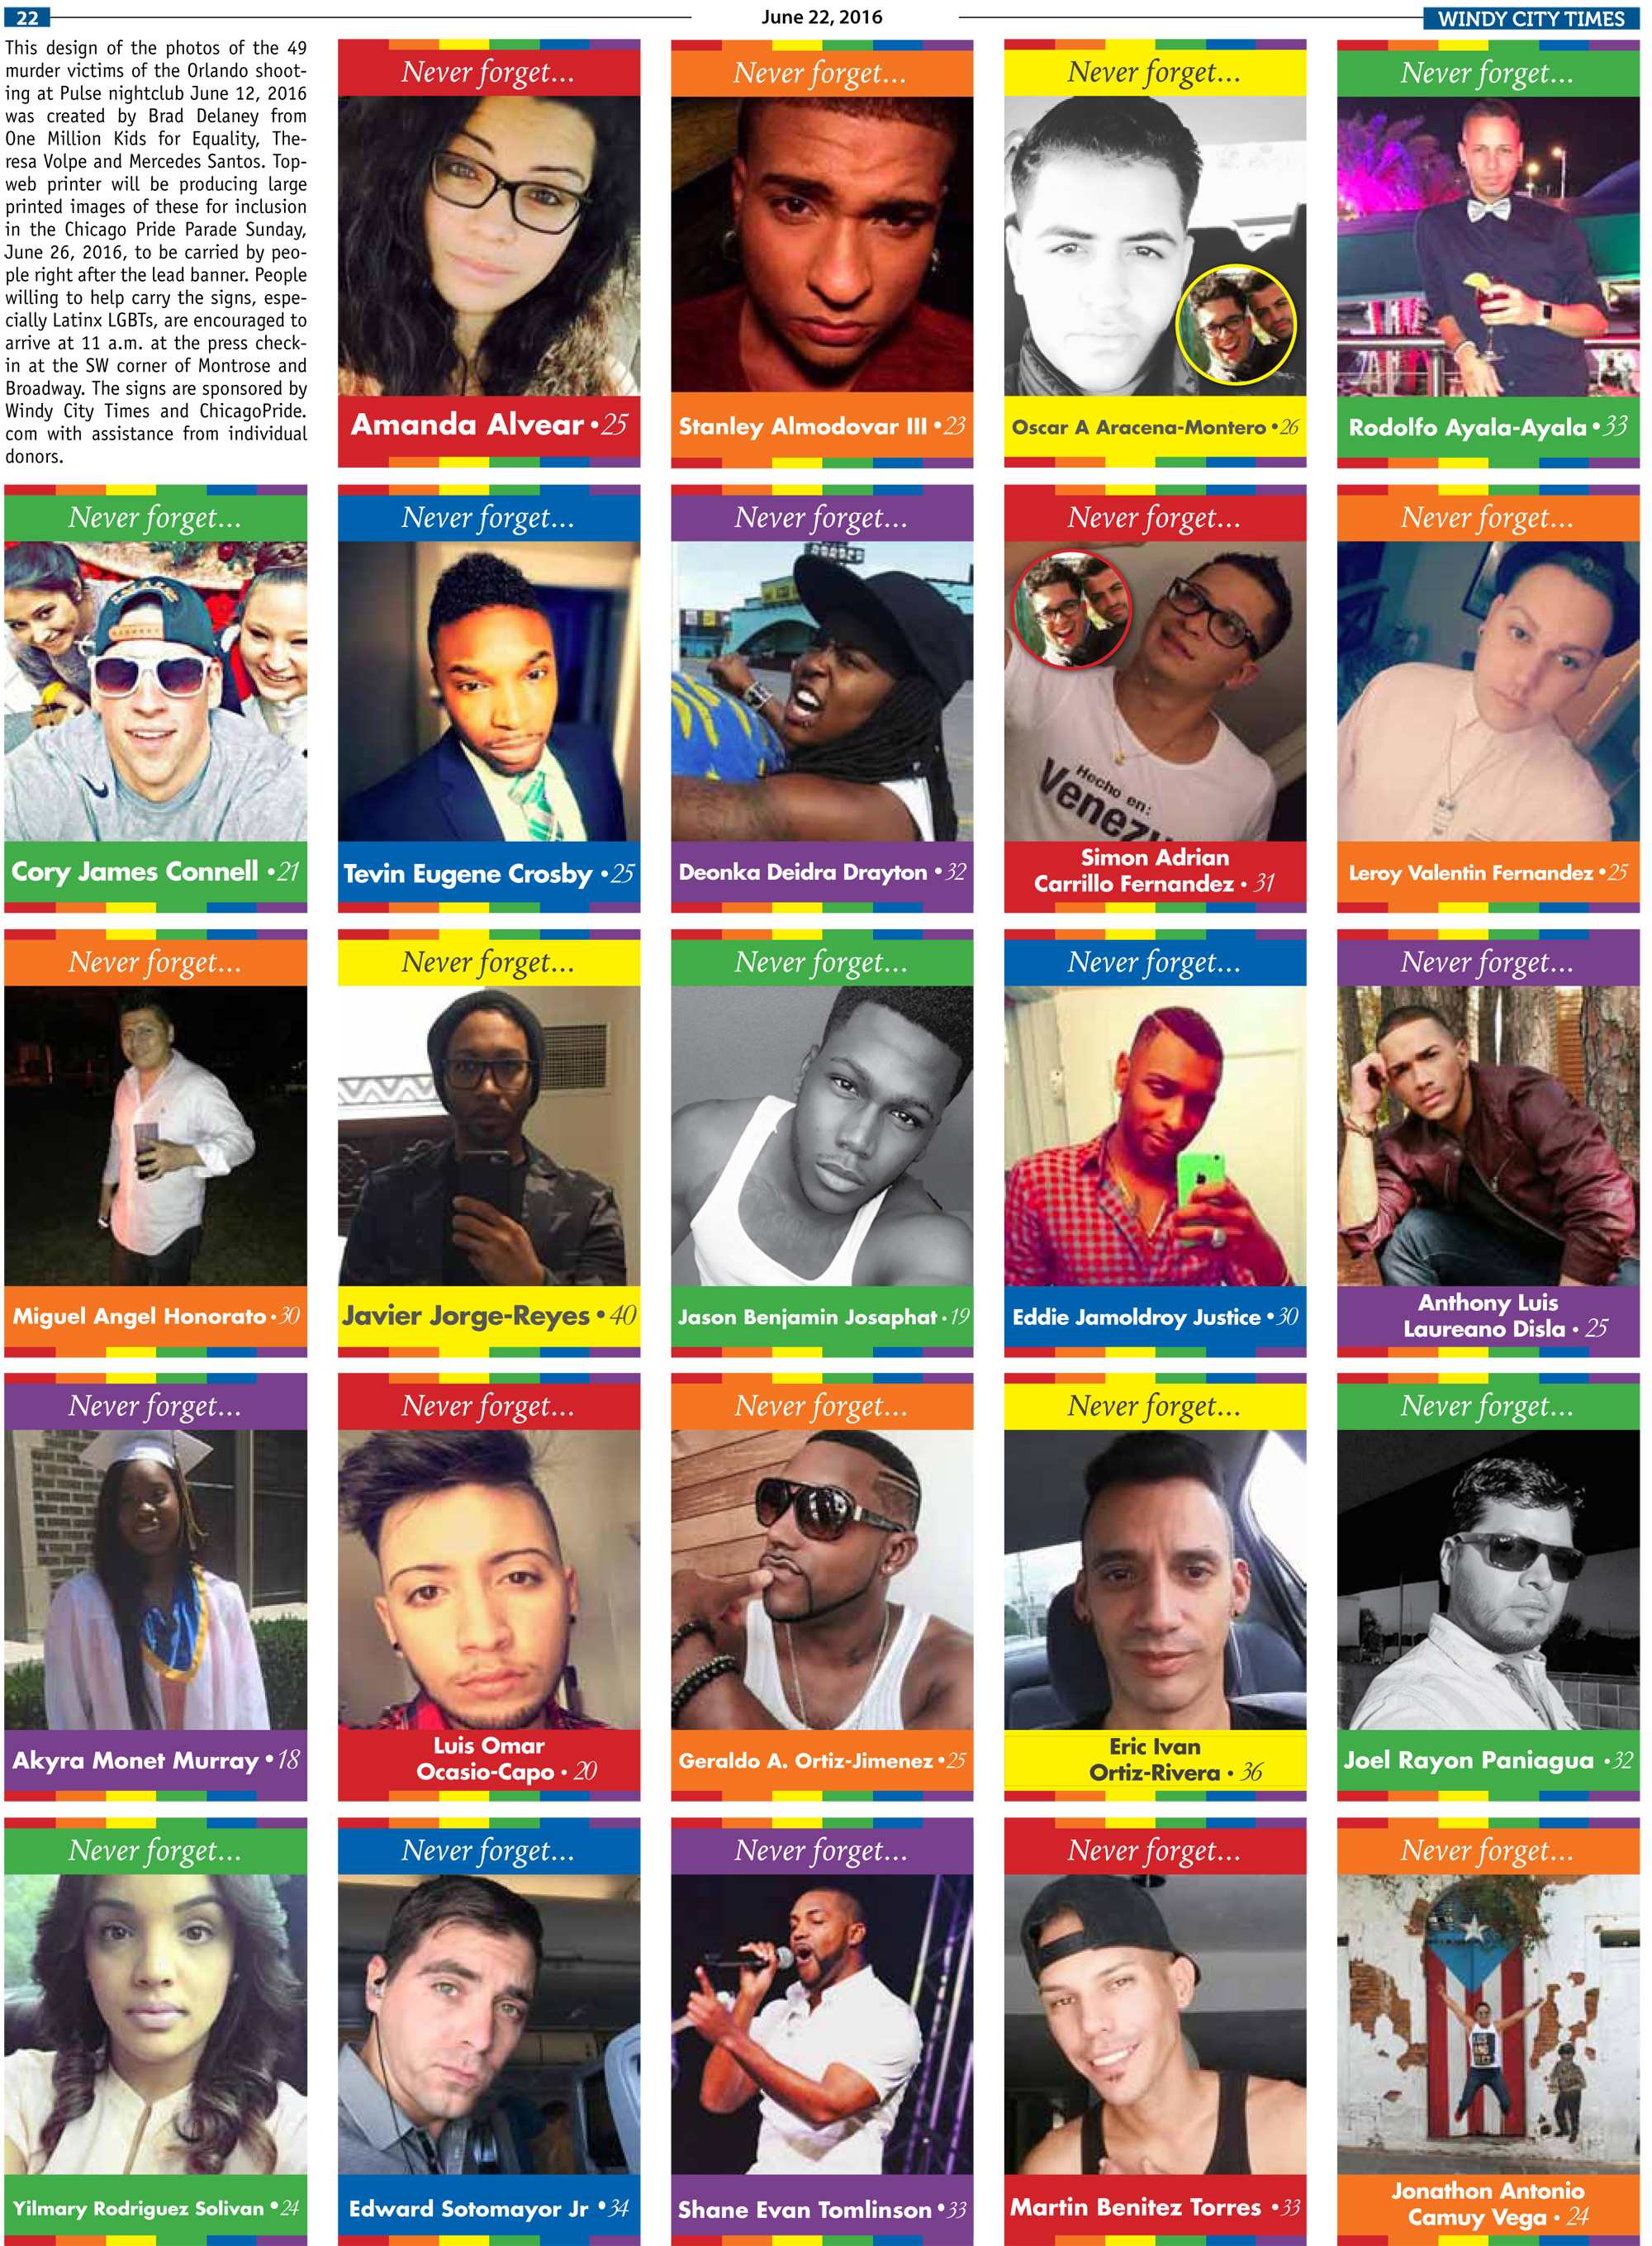 Never forget: The faces of Orlando